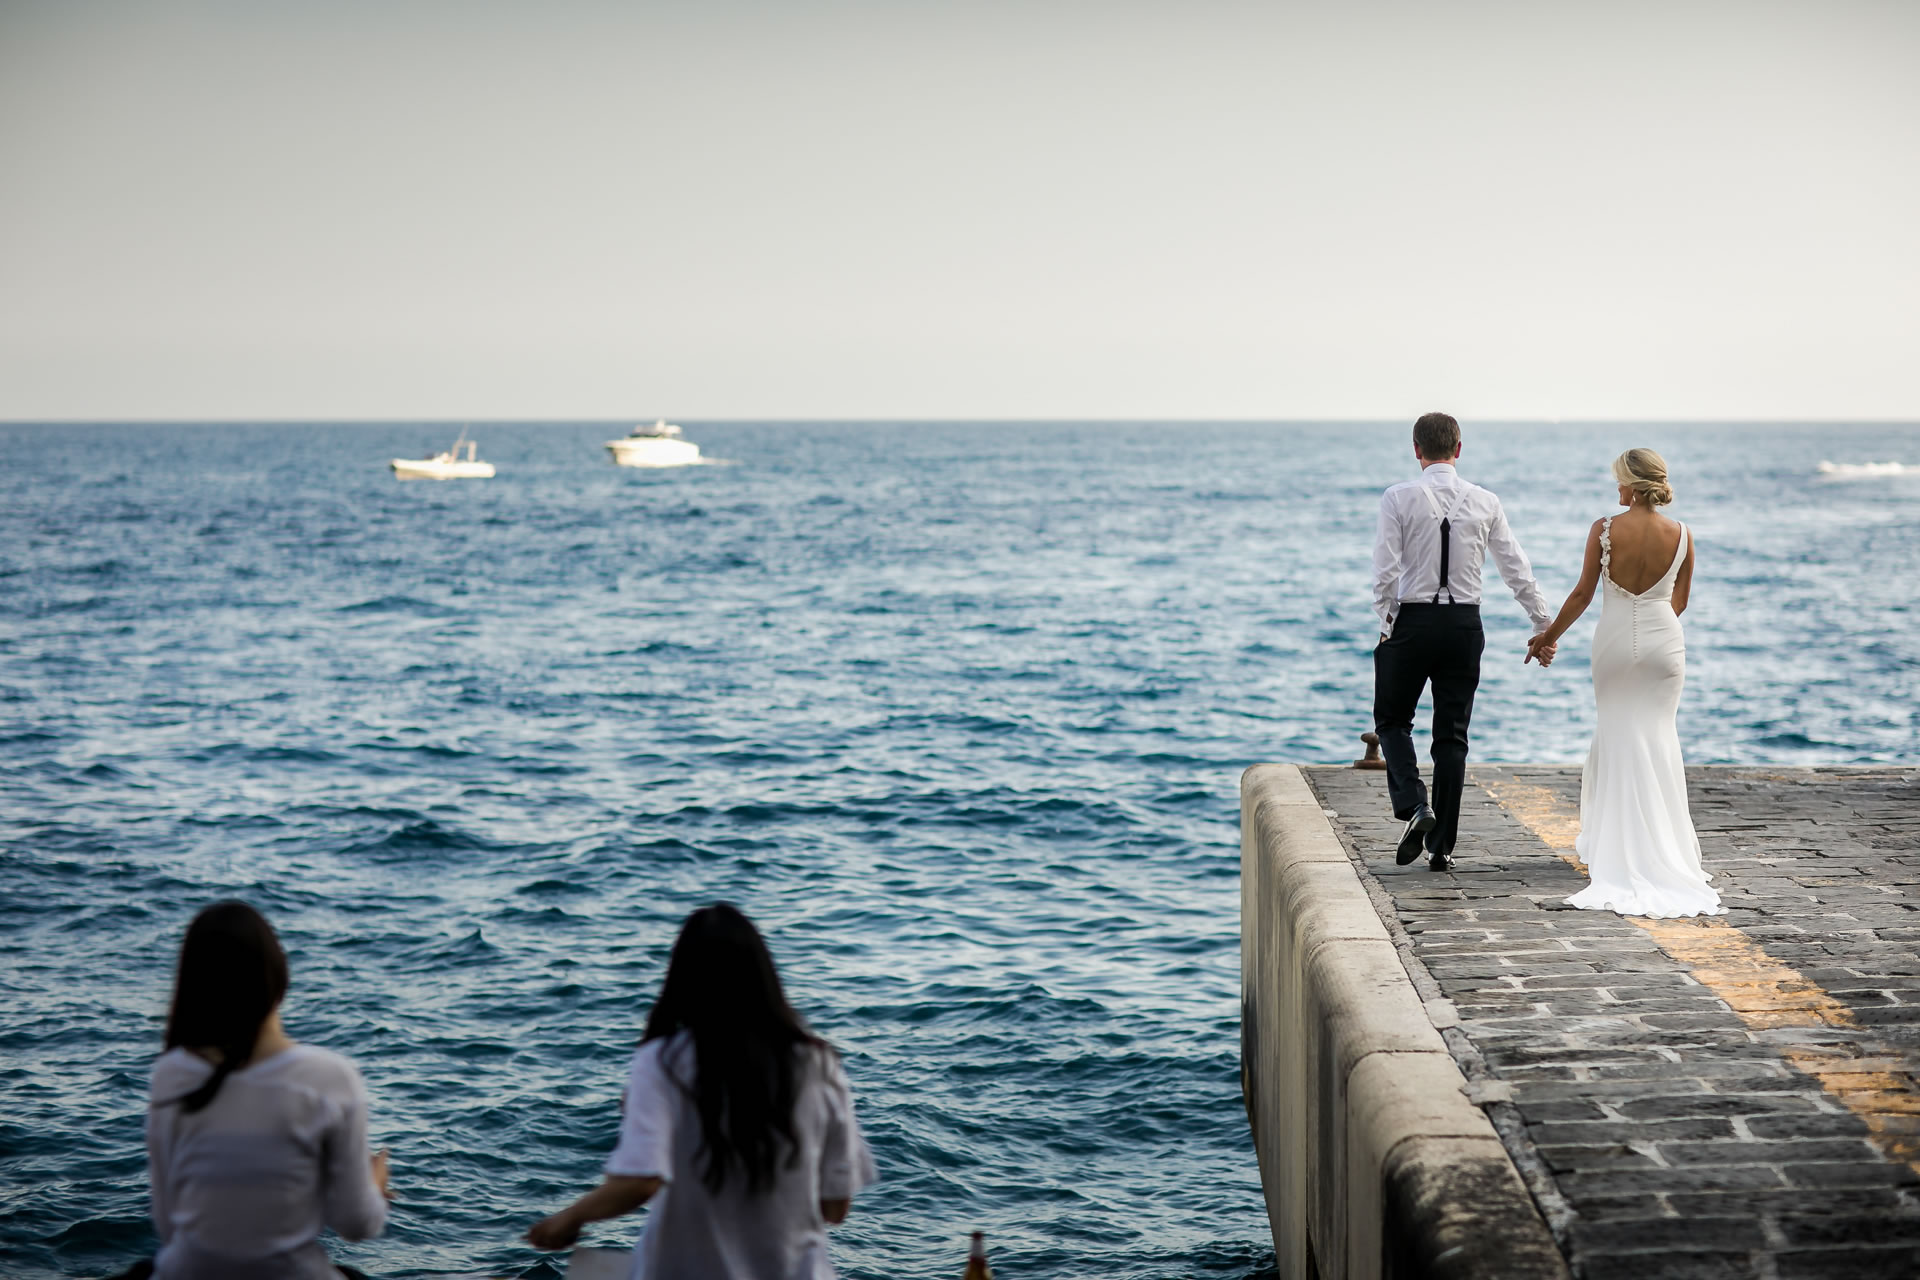 Pier - 41 :: Wedding in Positano. Sea and love :: Luxury wedding photography - 40 :: Pier - 41